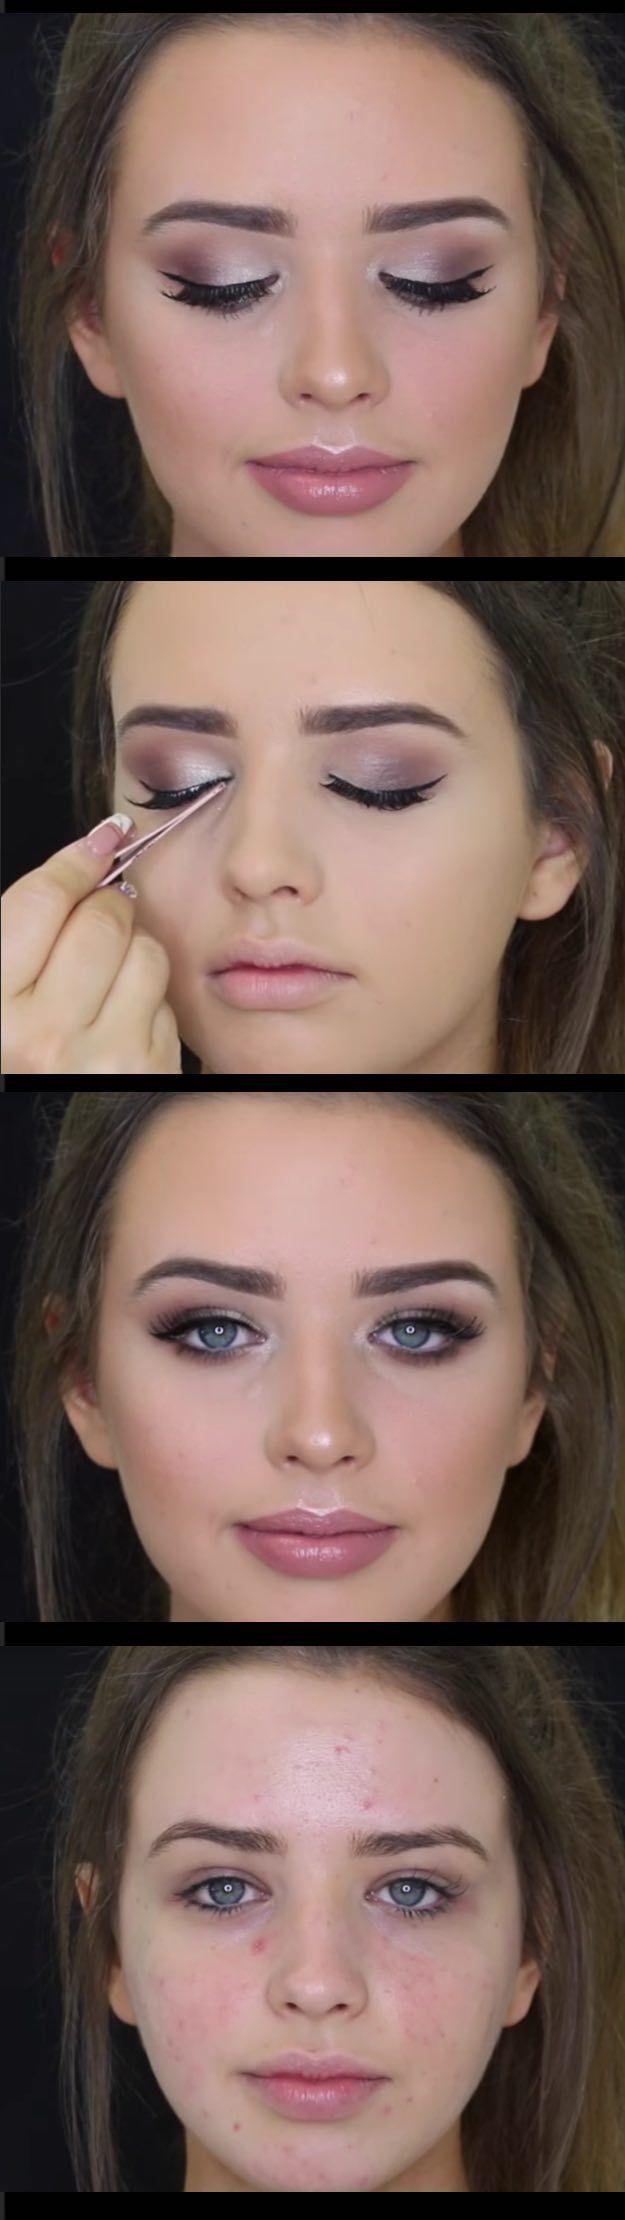 Discussion on this topic: Romantic Bridal Makeup Tutorial, romantic-bridal-makeup-tutorial/